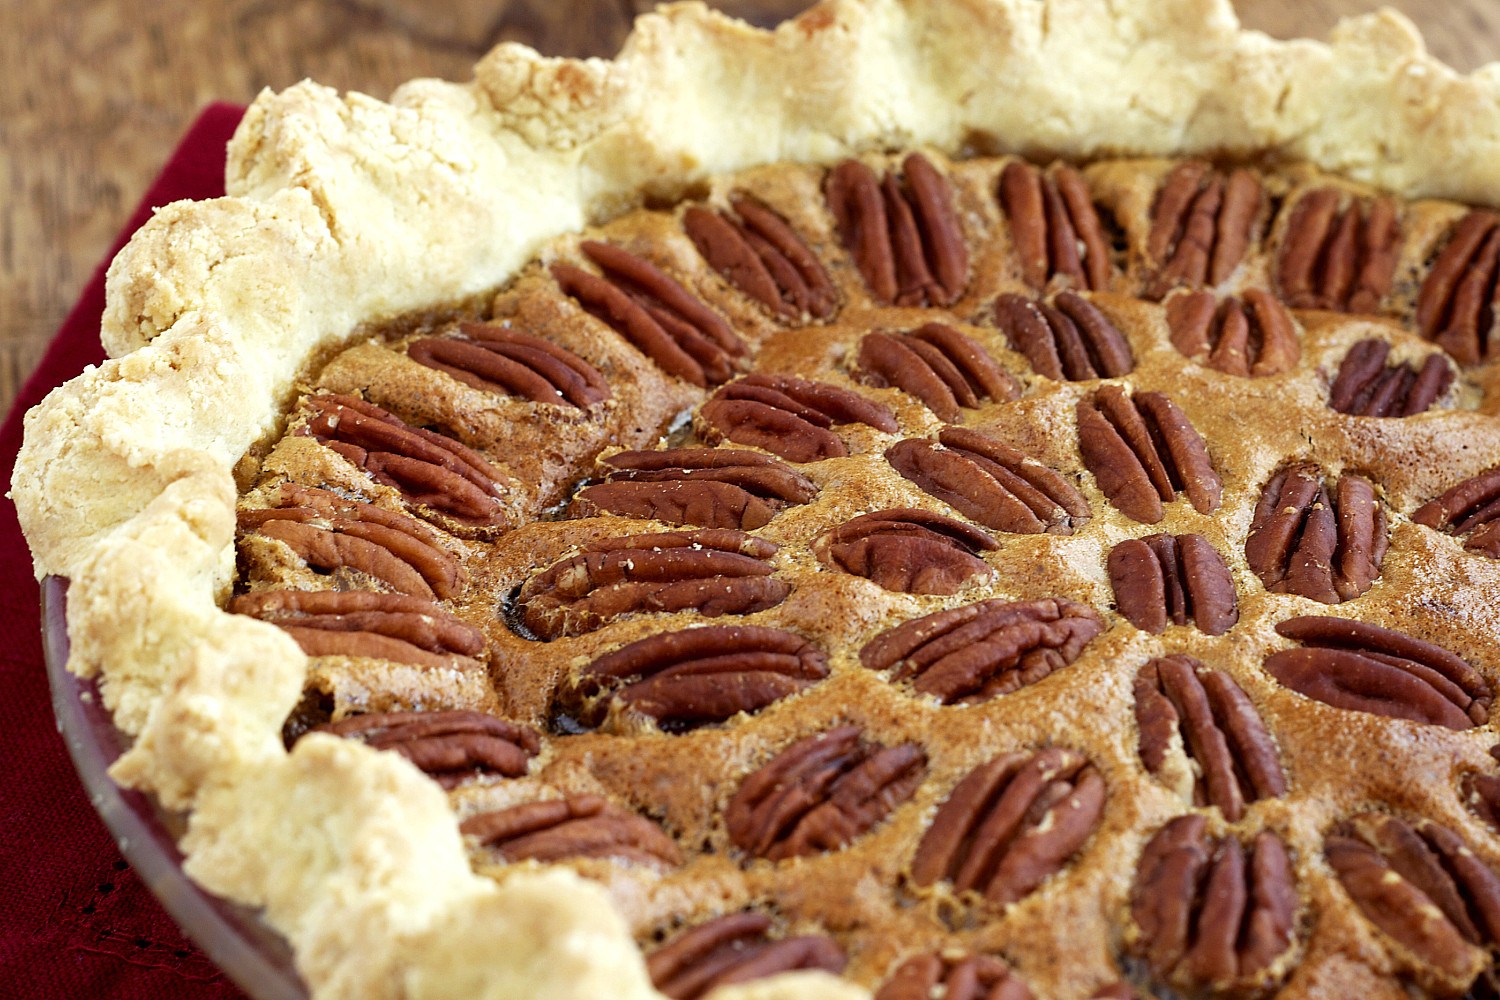 Organic Pecan Pie the 20 Best Ideas for Pecan Pie without Corn Syrup Deliciously organic